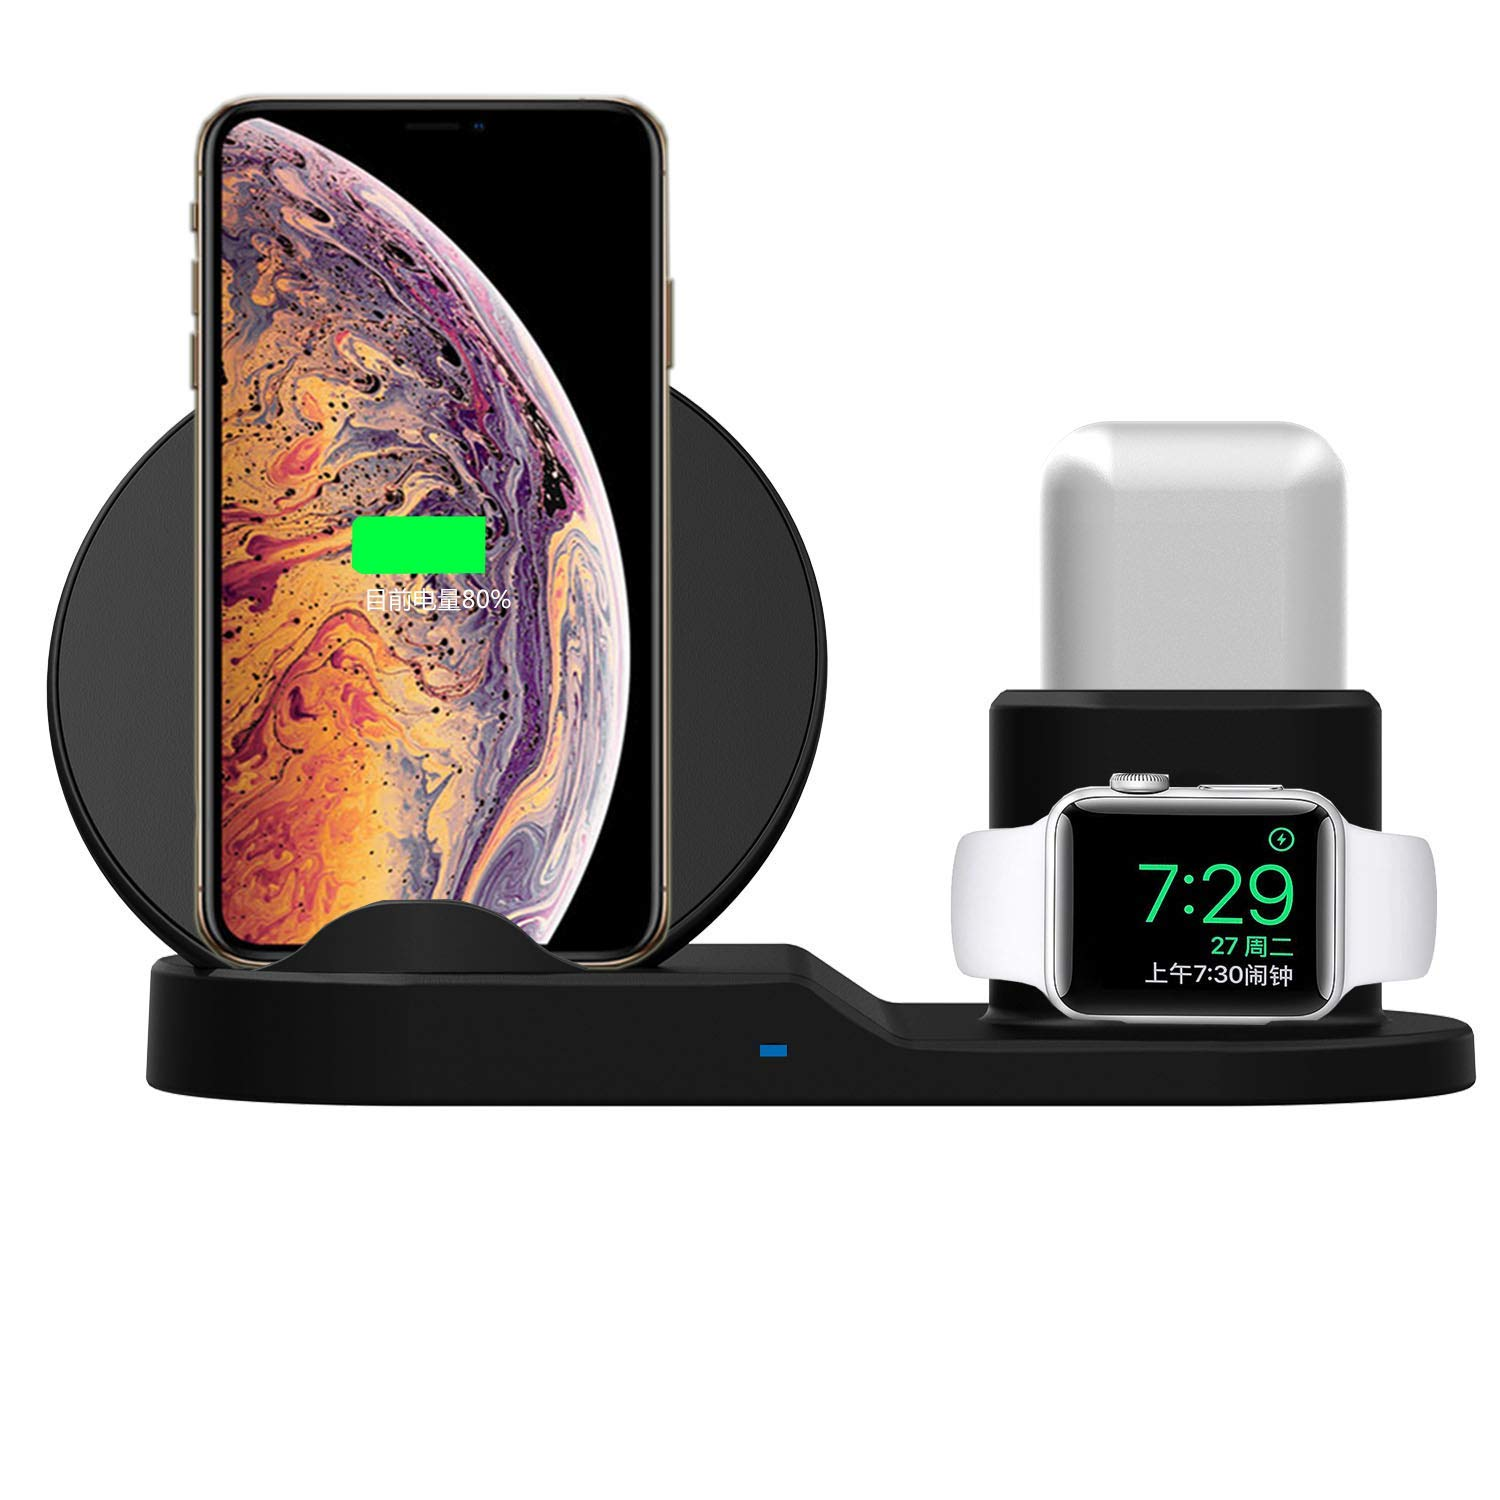 TOOBOSS 3 in 1 Wireless Charger,10W Qi Fast Wireless Charger Stand Compatible with iPhone Xs Max/XR/Samsung S10 S9+ Note 8,Wireless Charging Station ...